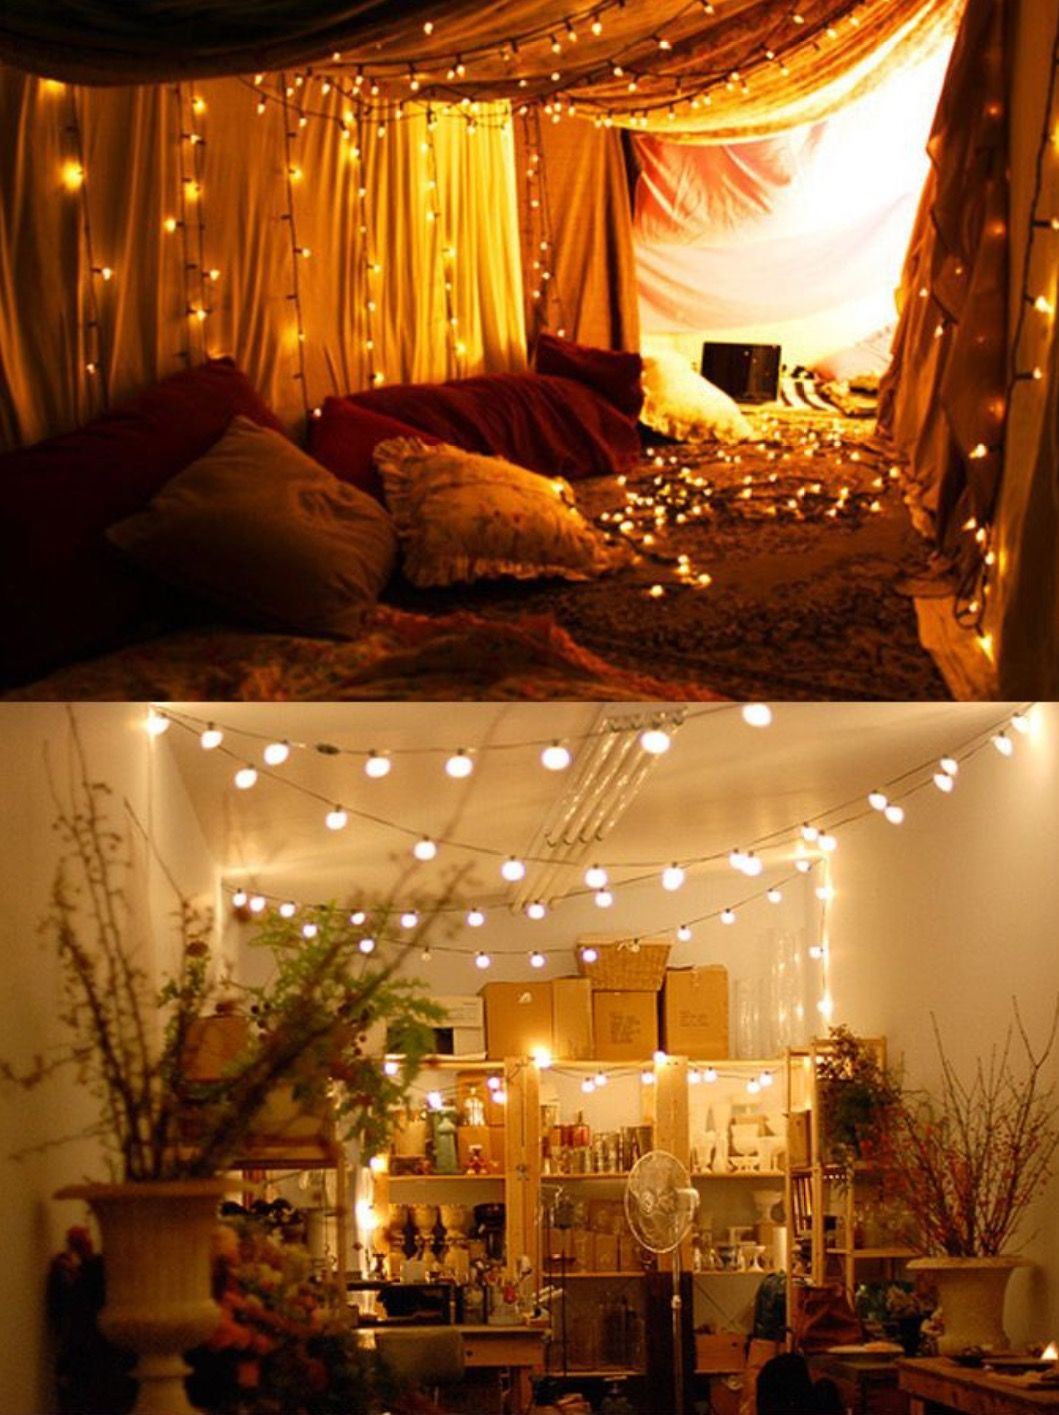 Fairy Lights Decoration Fairy Lights Bedroom Fairy Lights Decor Fairy Lights